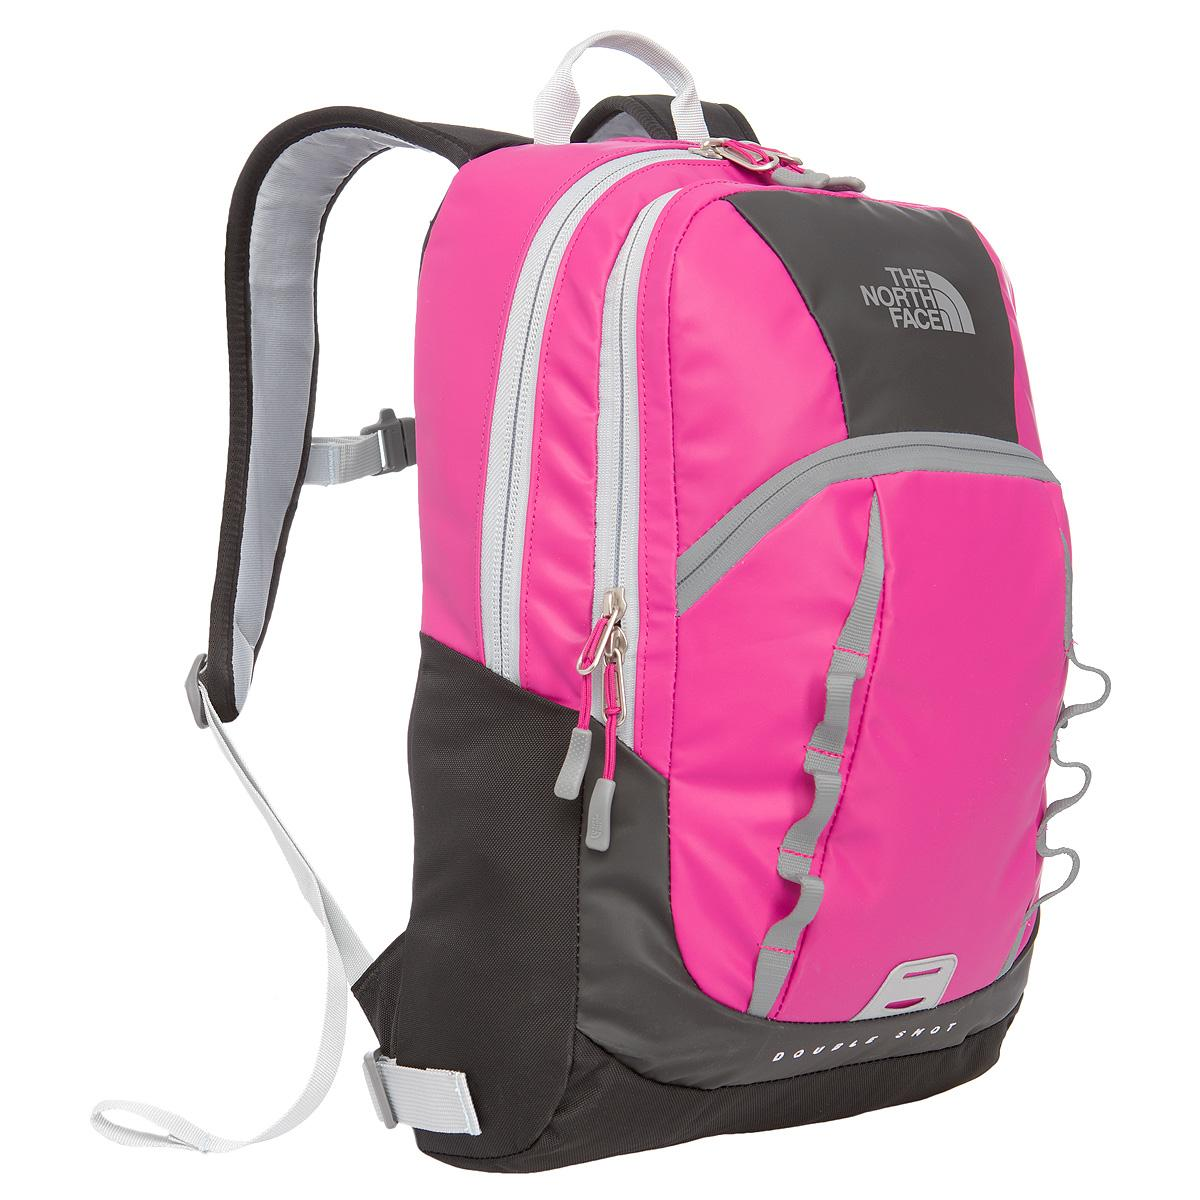 Foto Mochila pequeña The North Face Base Camp Double Shot gris/rosa p